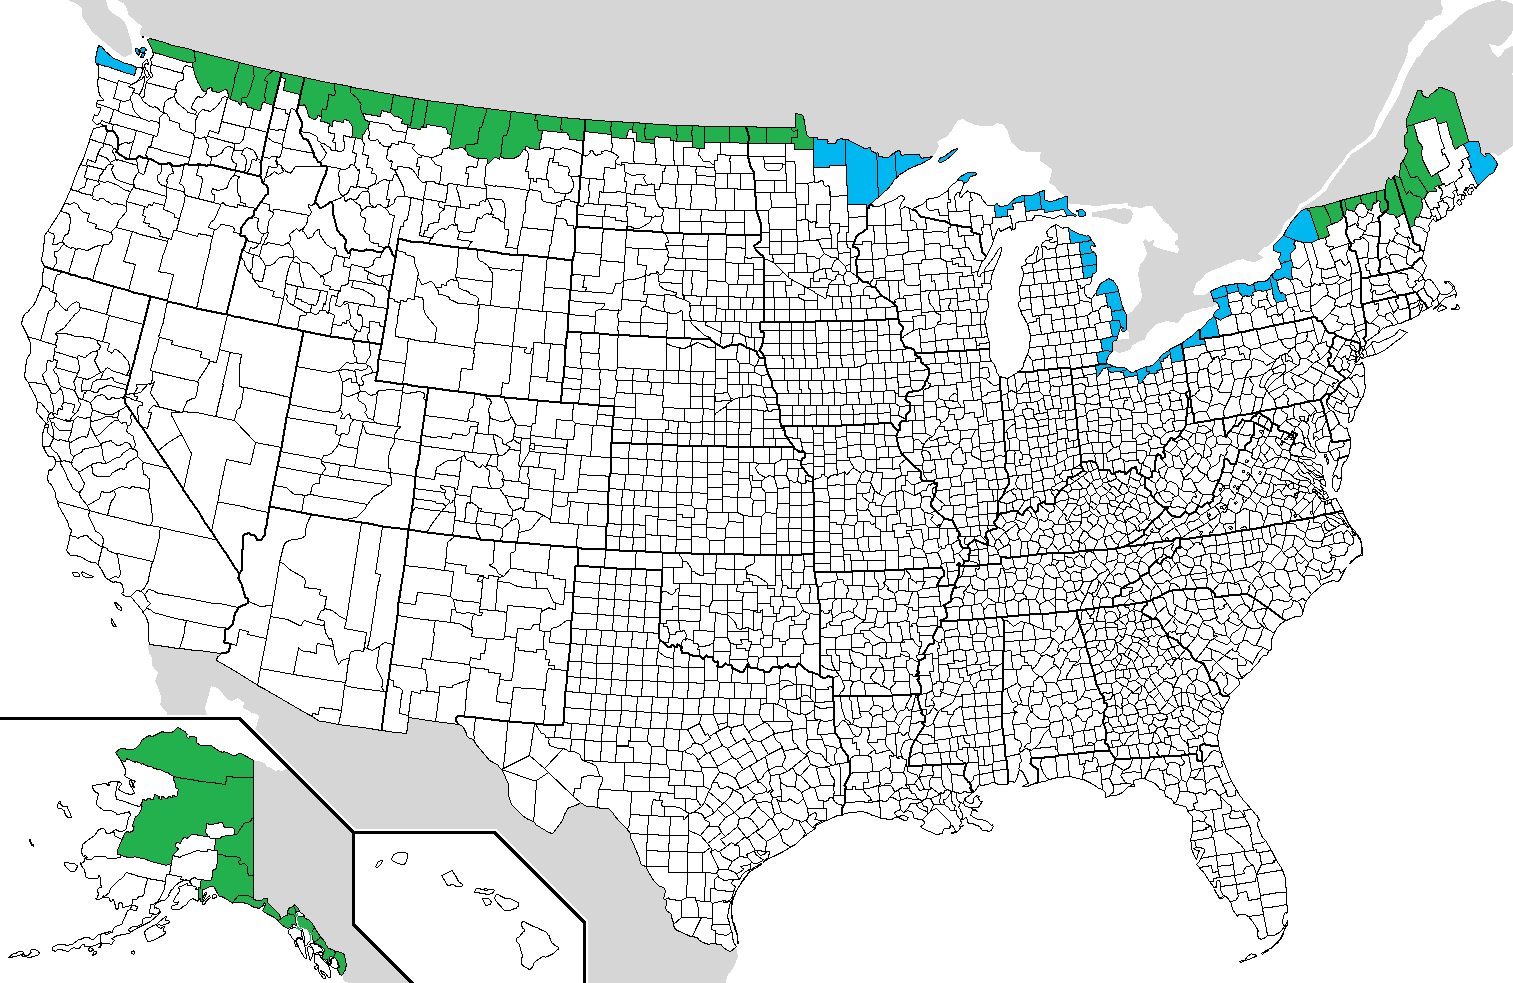 Datei:US-Canada border counties.png – Wikipedia